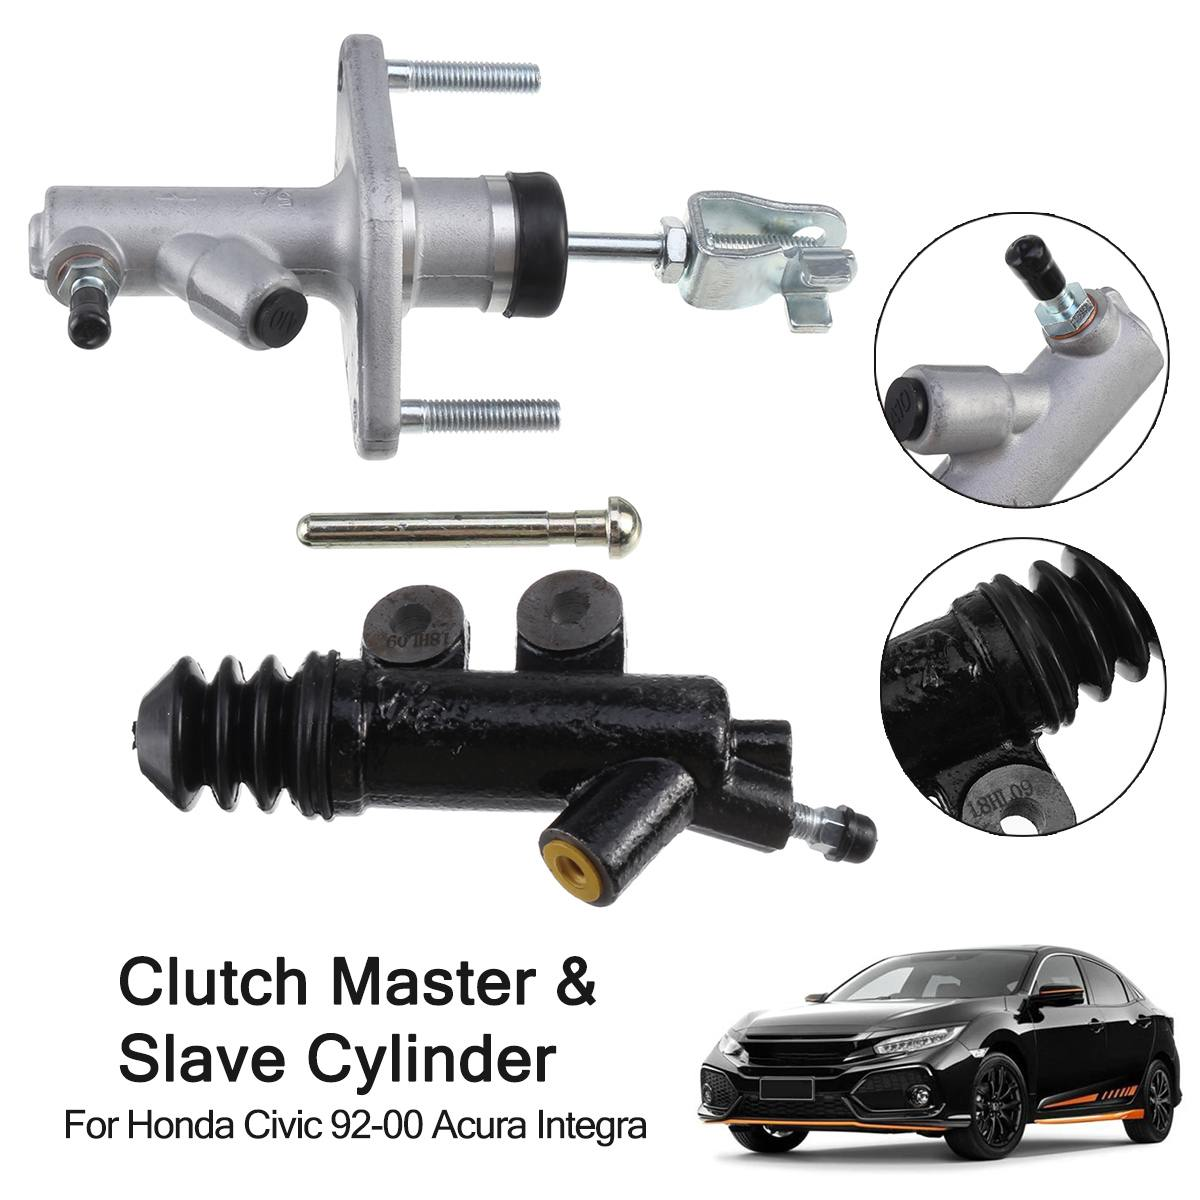 Top Quality Clutch Master Cylinder for Honda Civic